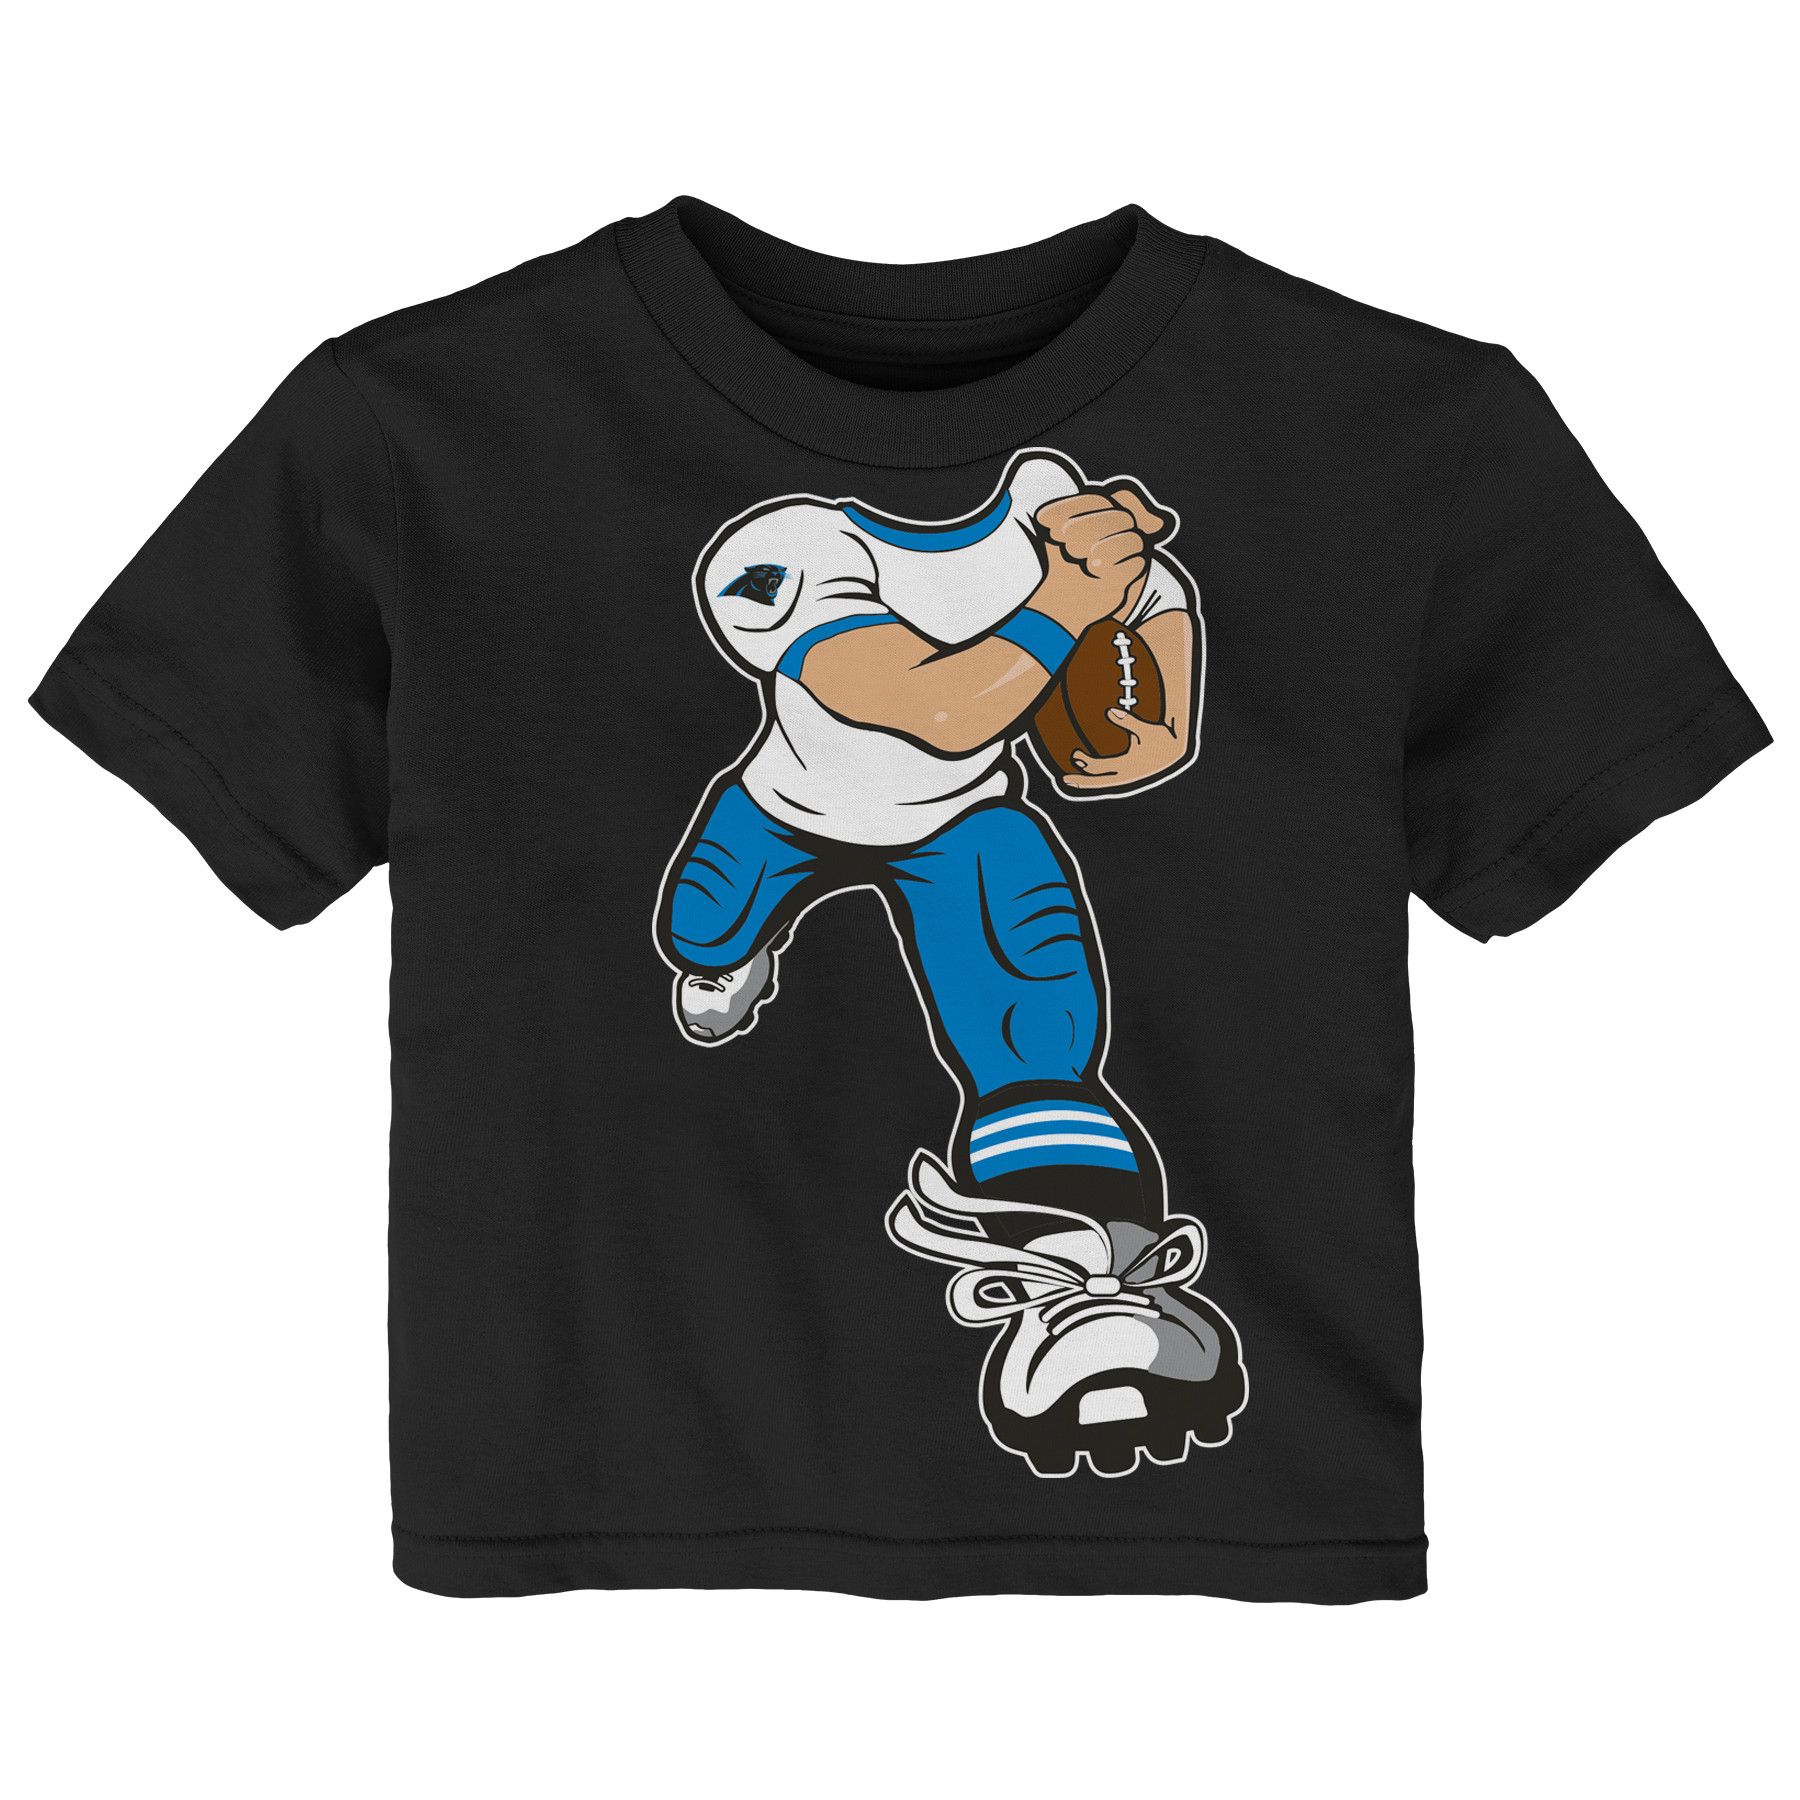 Carolina Panthers Toddler Yard Rush T-Shirt - Black